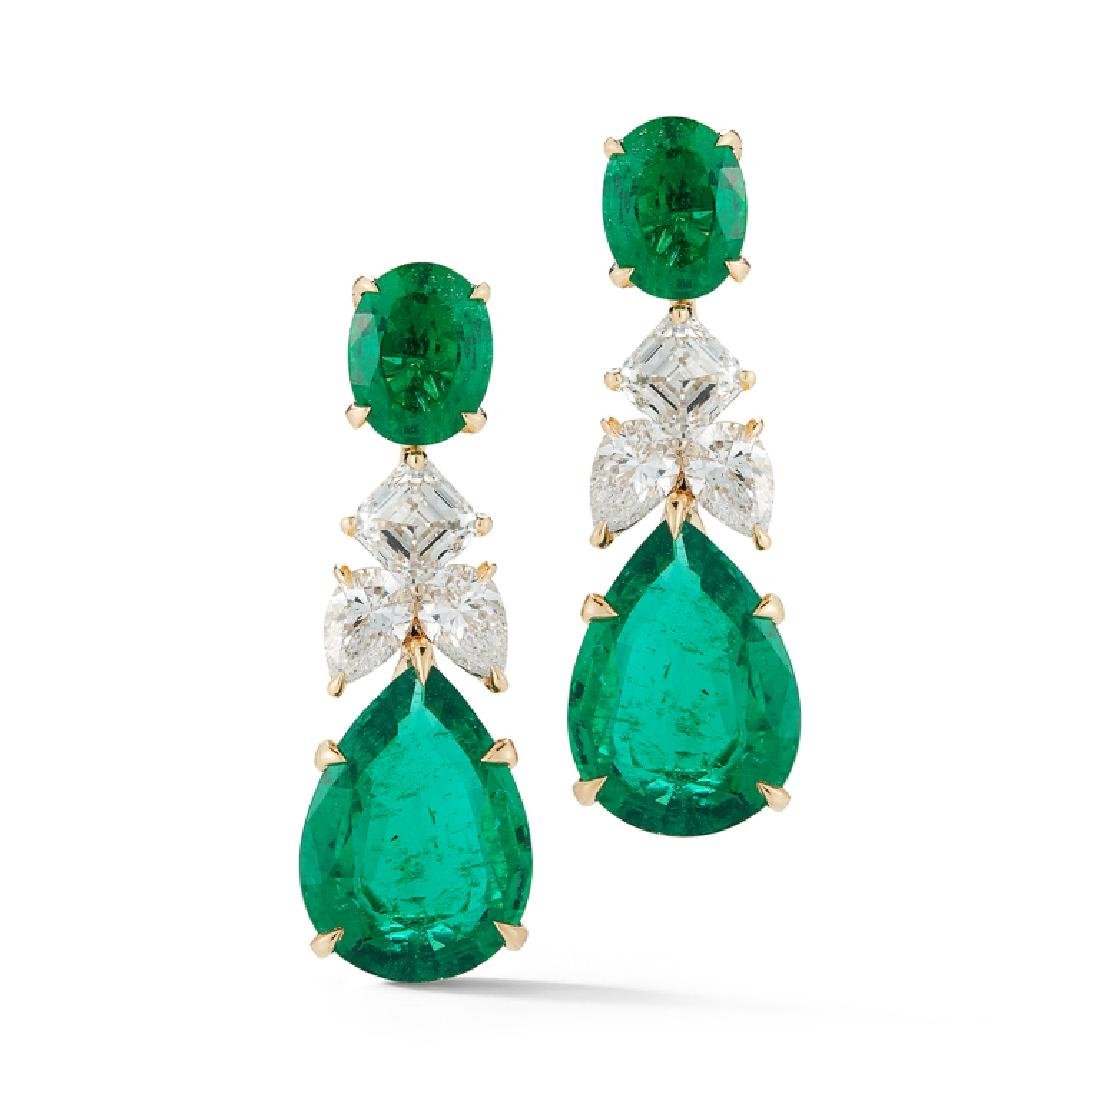 18K Gold 14.53ct. Reign Emerald Earring